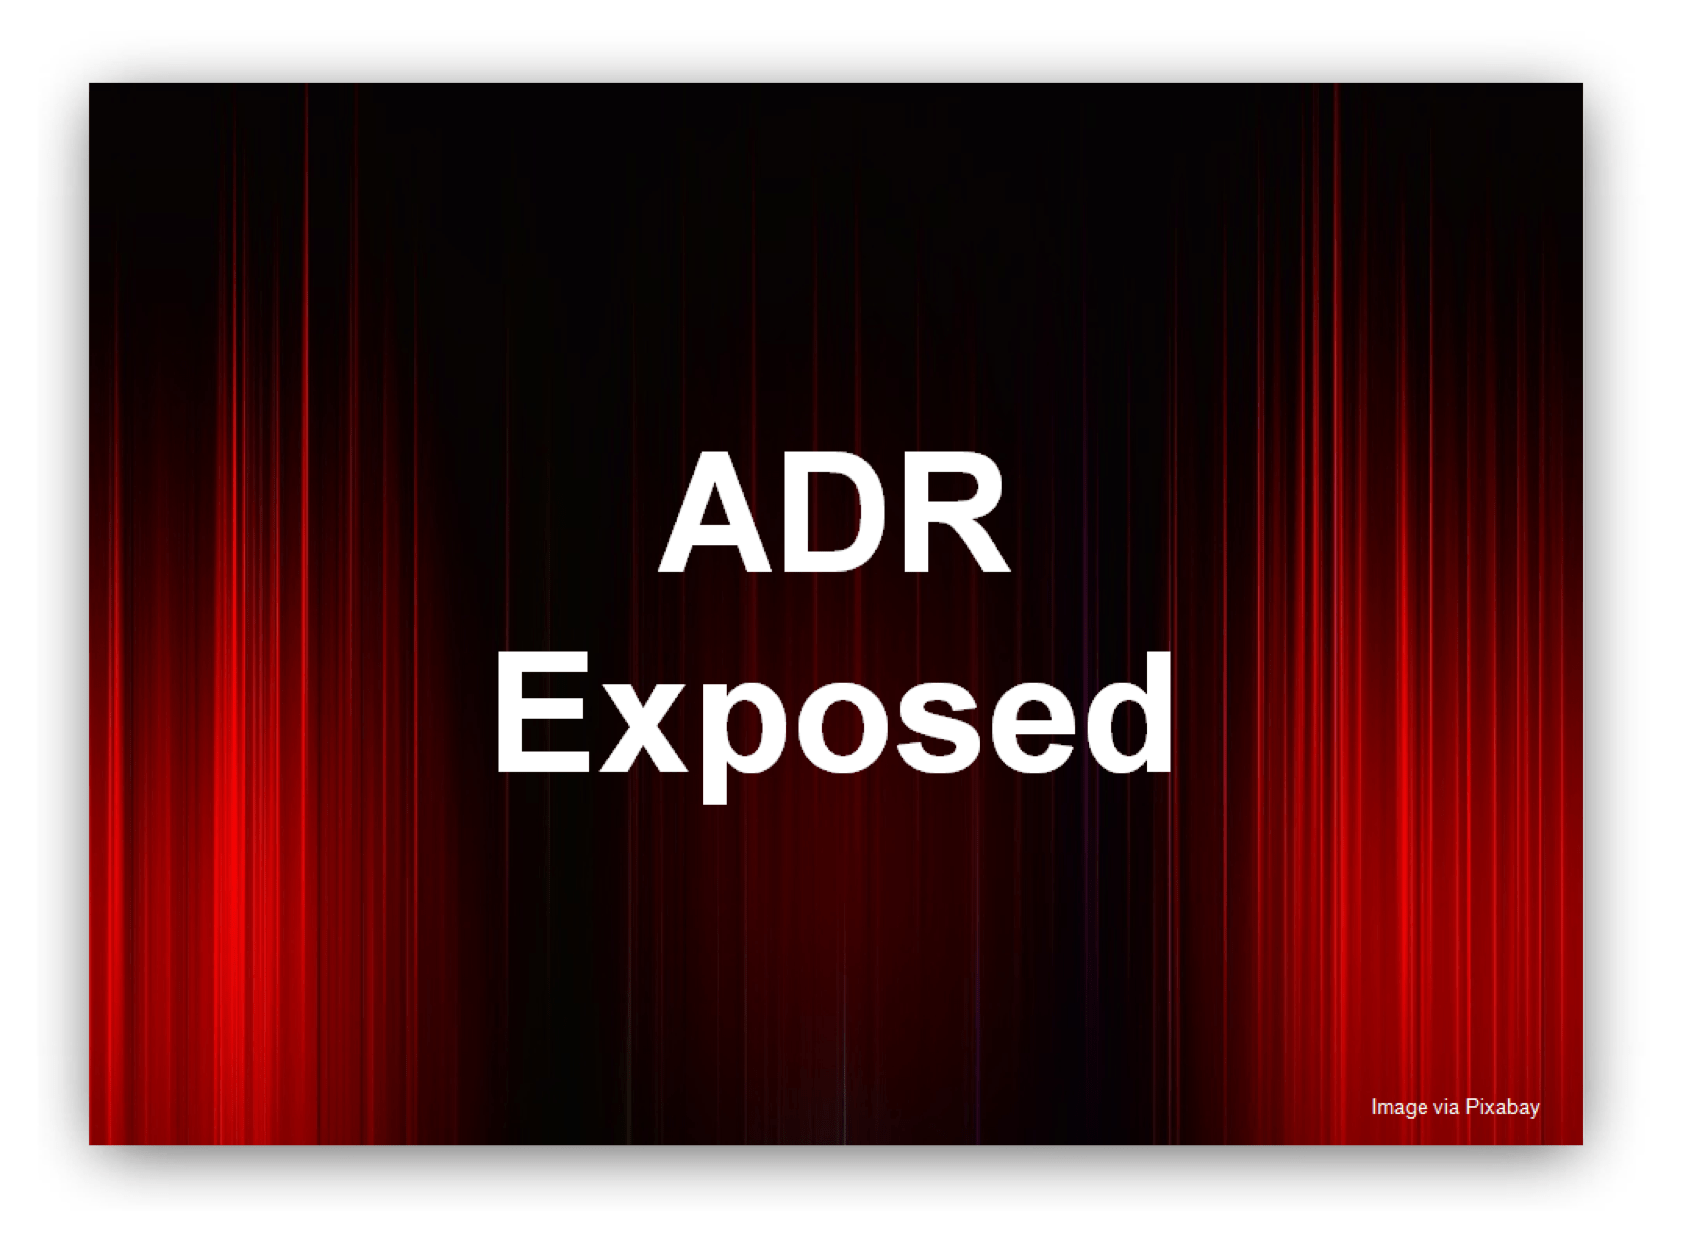 Picture of curtain with the title 'ADR Exposed' in the middle.